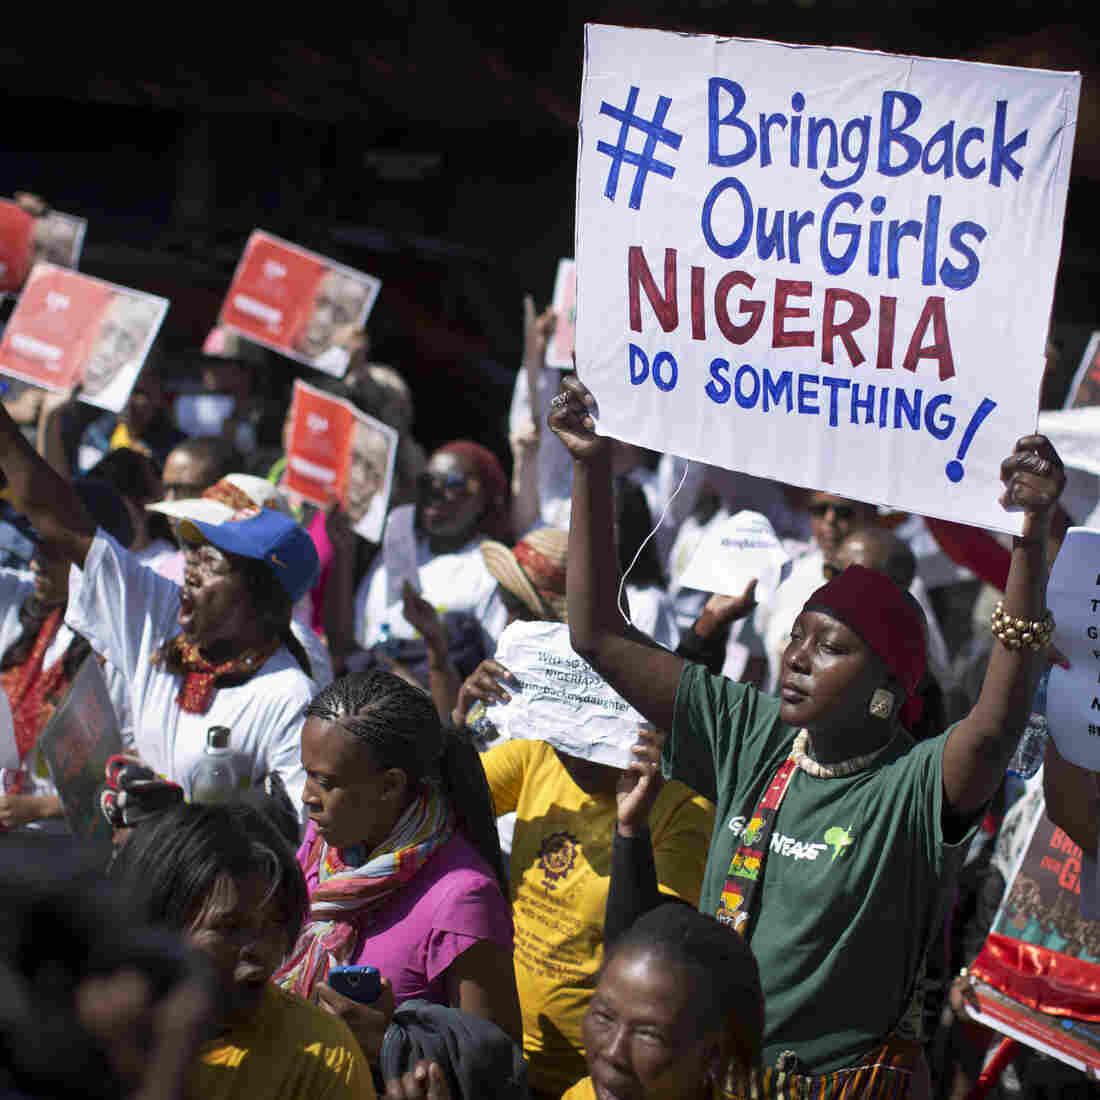 The effort to find hundreds of abducted Nigerian schoolgirls has gone international — and so has anger over the mass kidnapping, as evidenced by this protest Thursday in South Africa. Retired Gen. Carter Ham says there's still a chance for the U.S. to help.